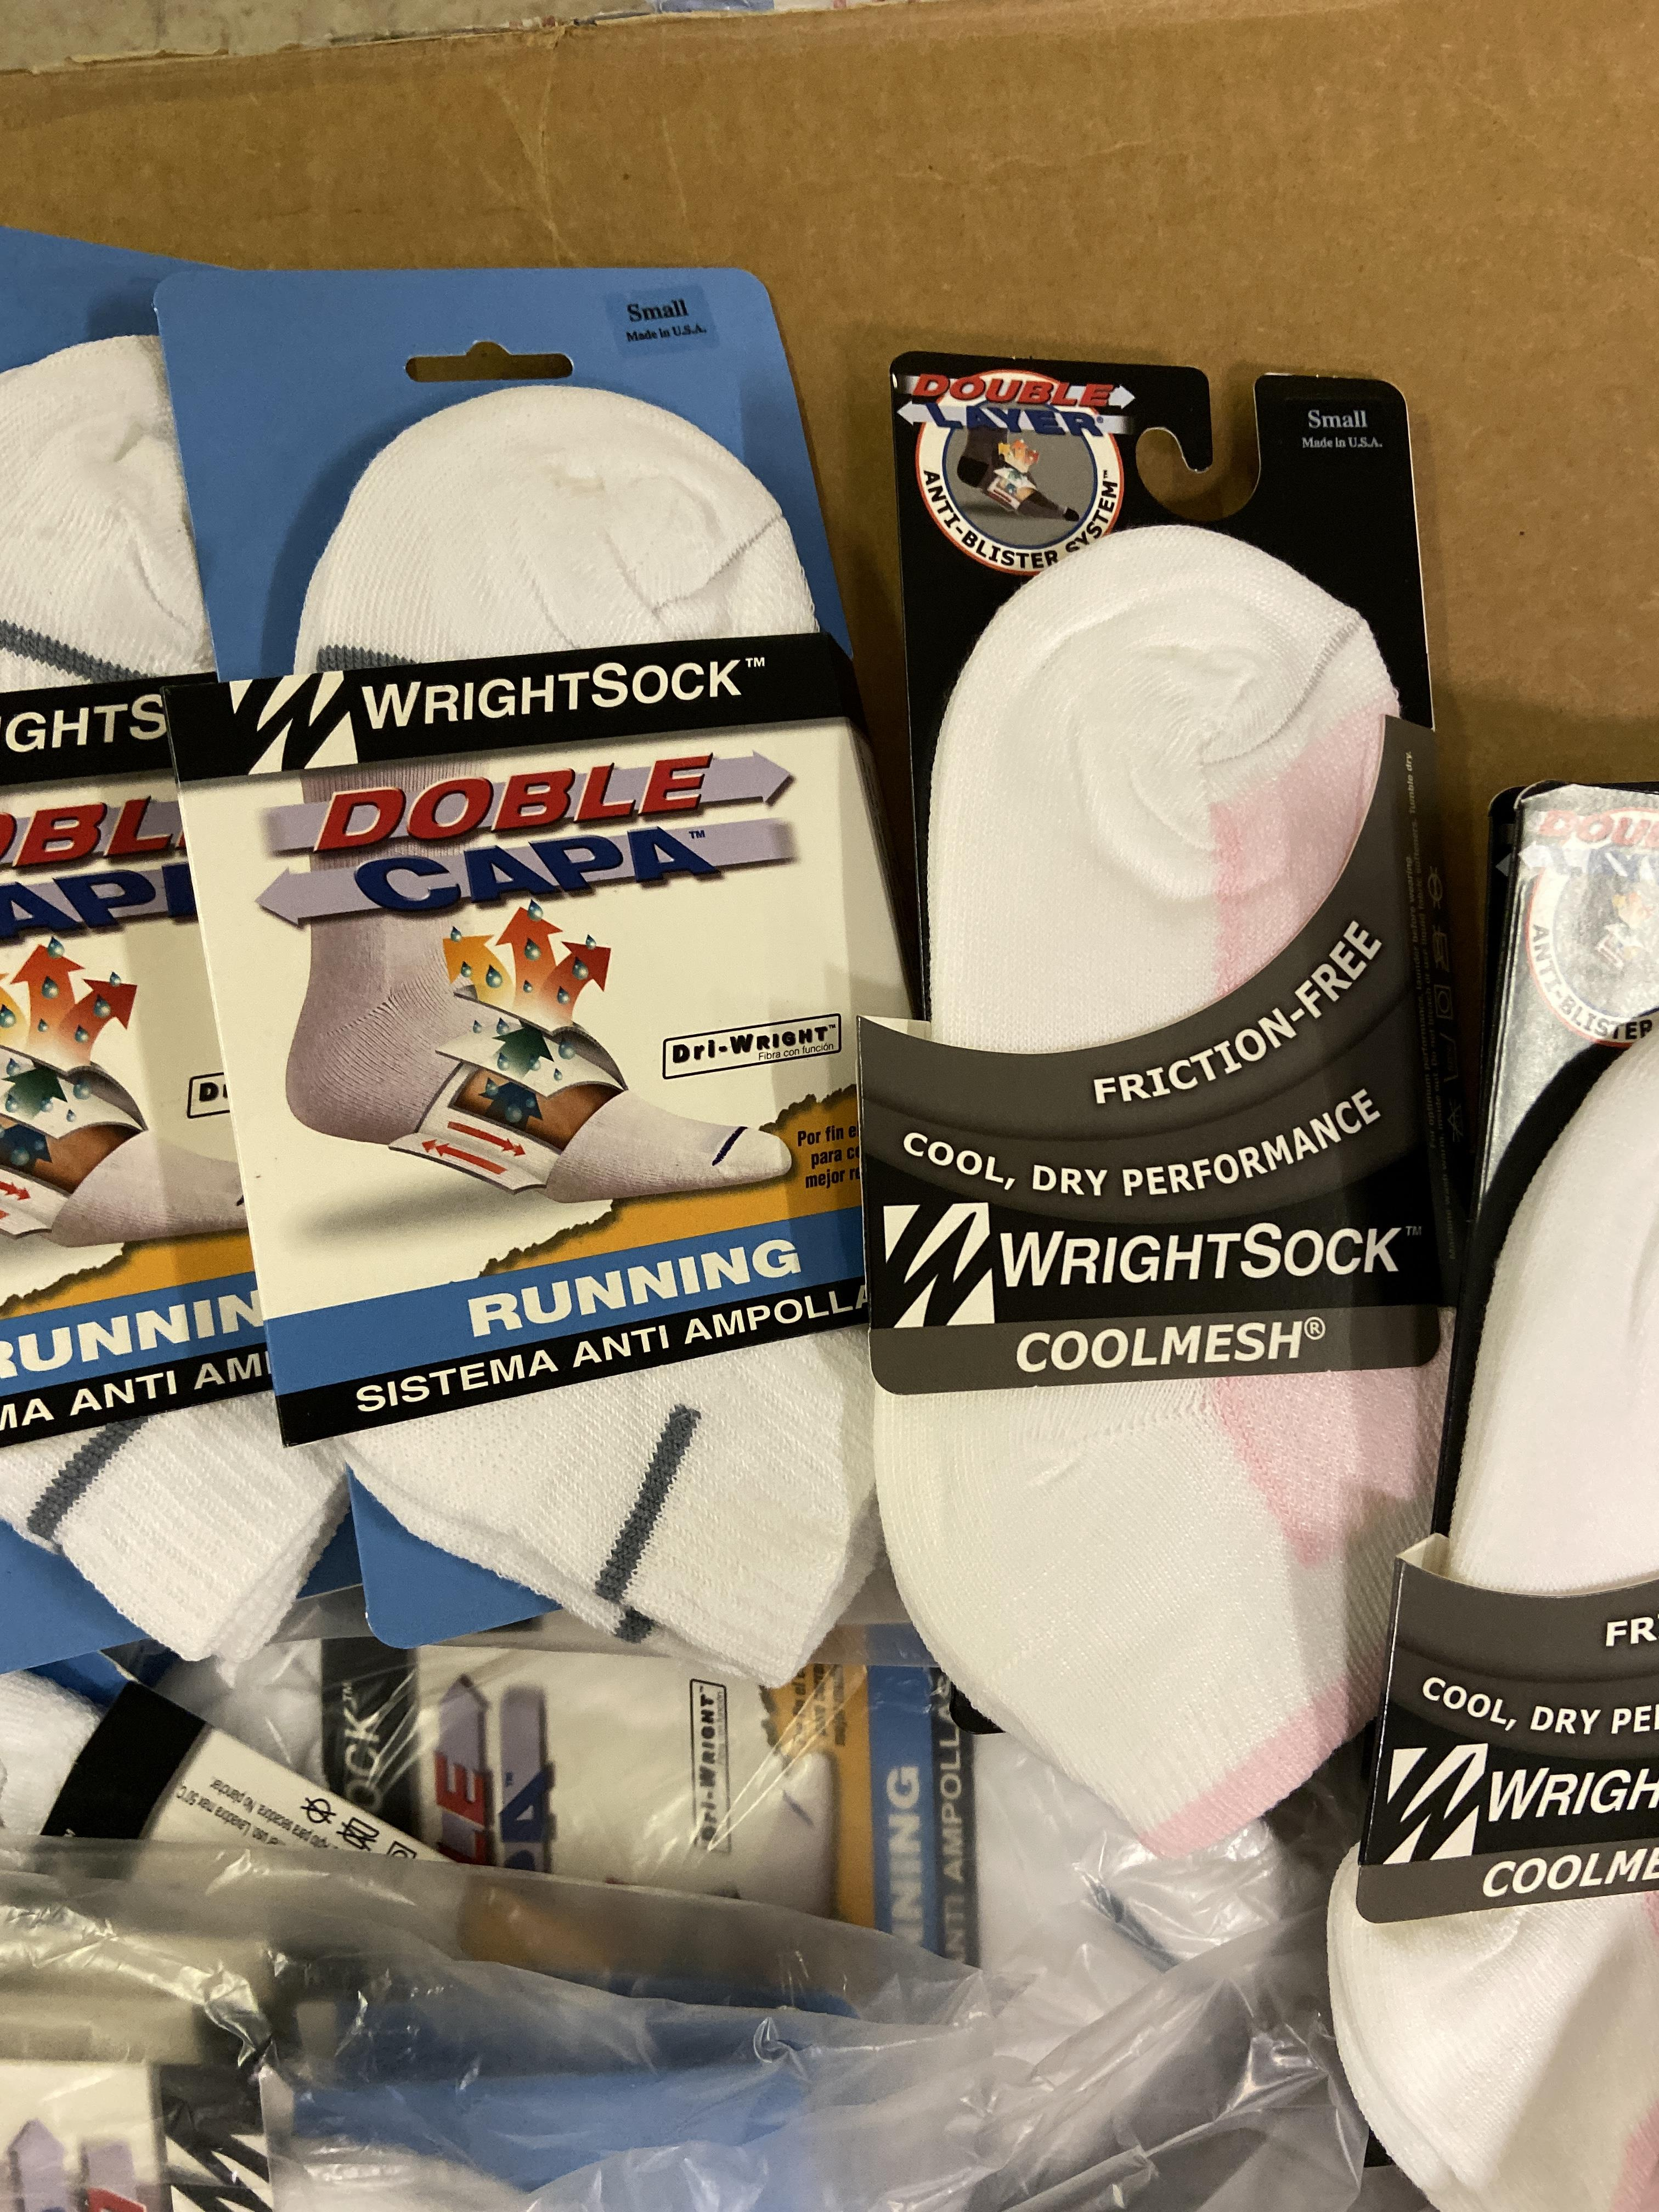 500+ packs of New Socks, Wrightsock Running and Coolmesh, Double Layer, White w. Various Stripes - Image 4 of 7